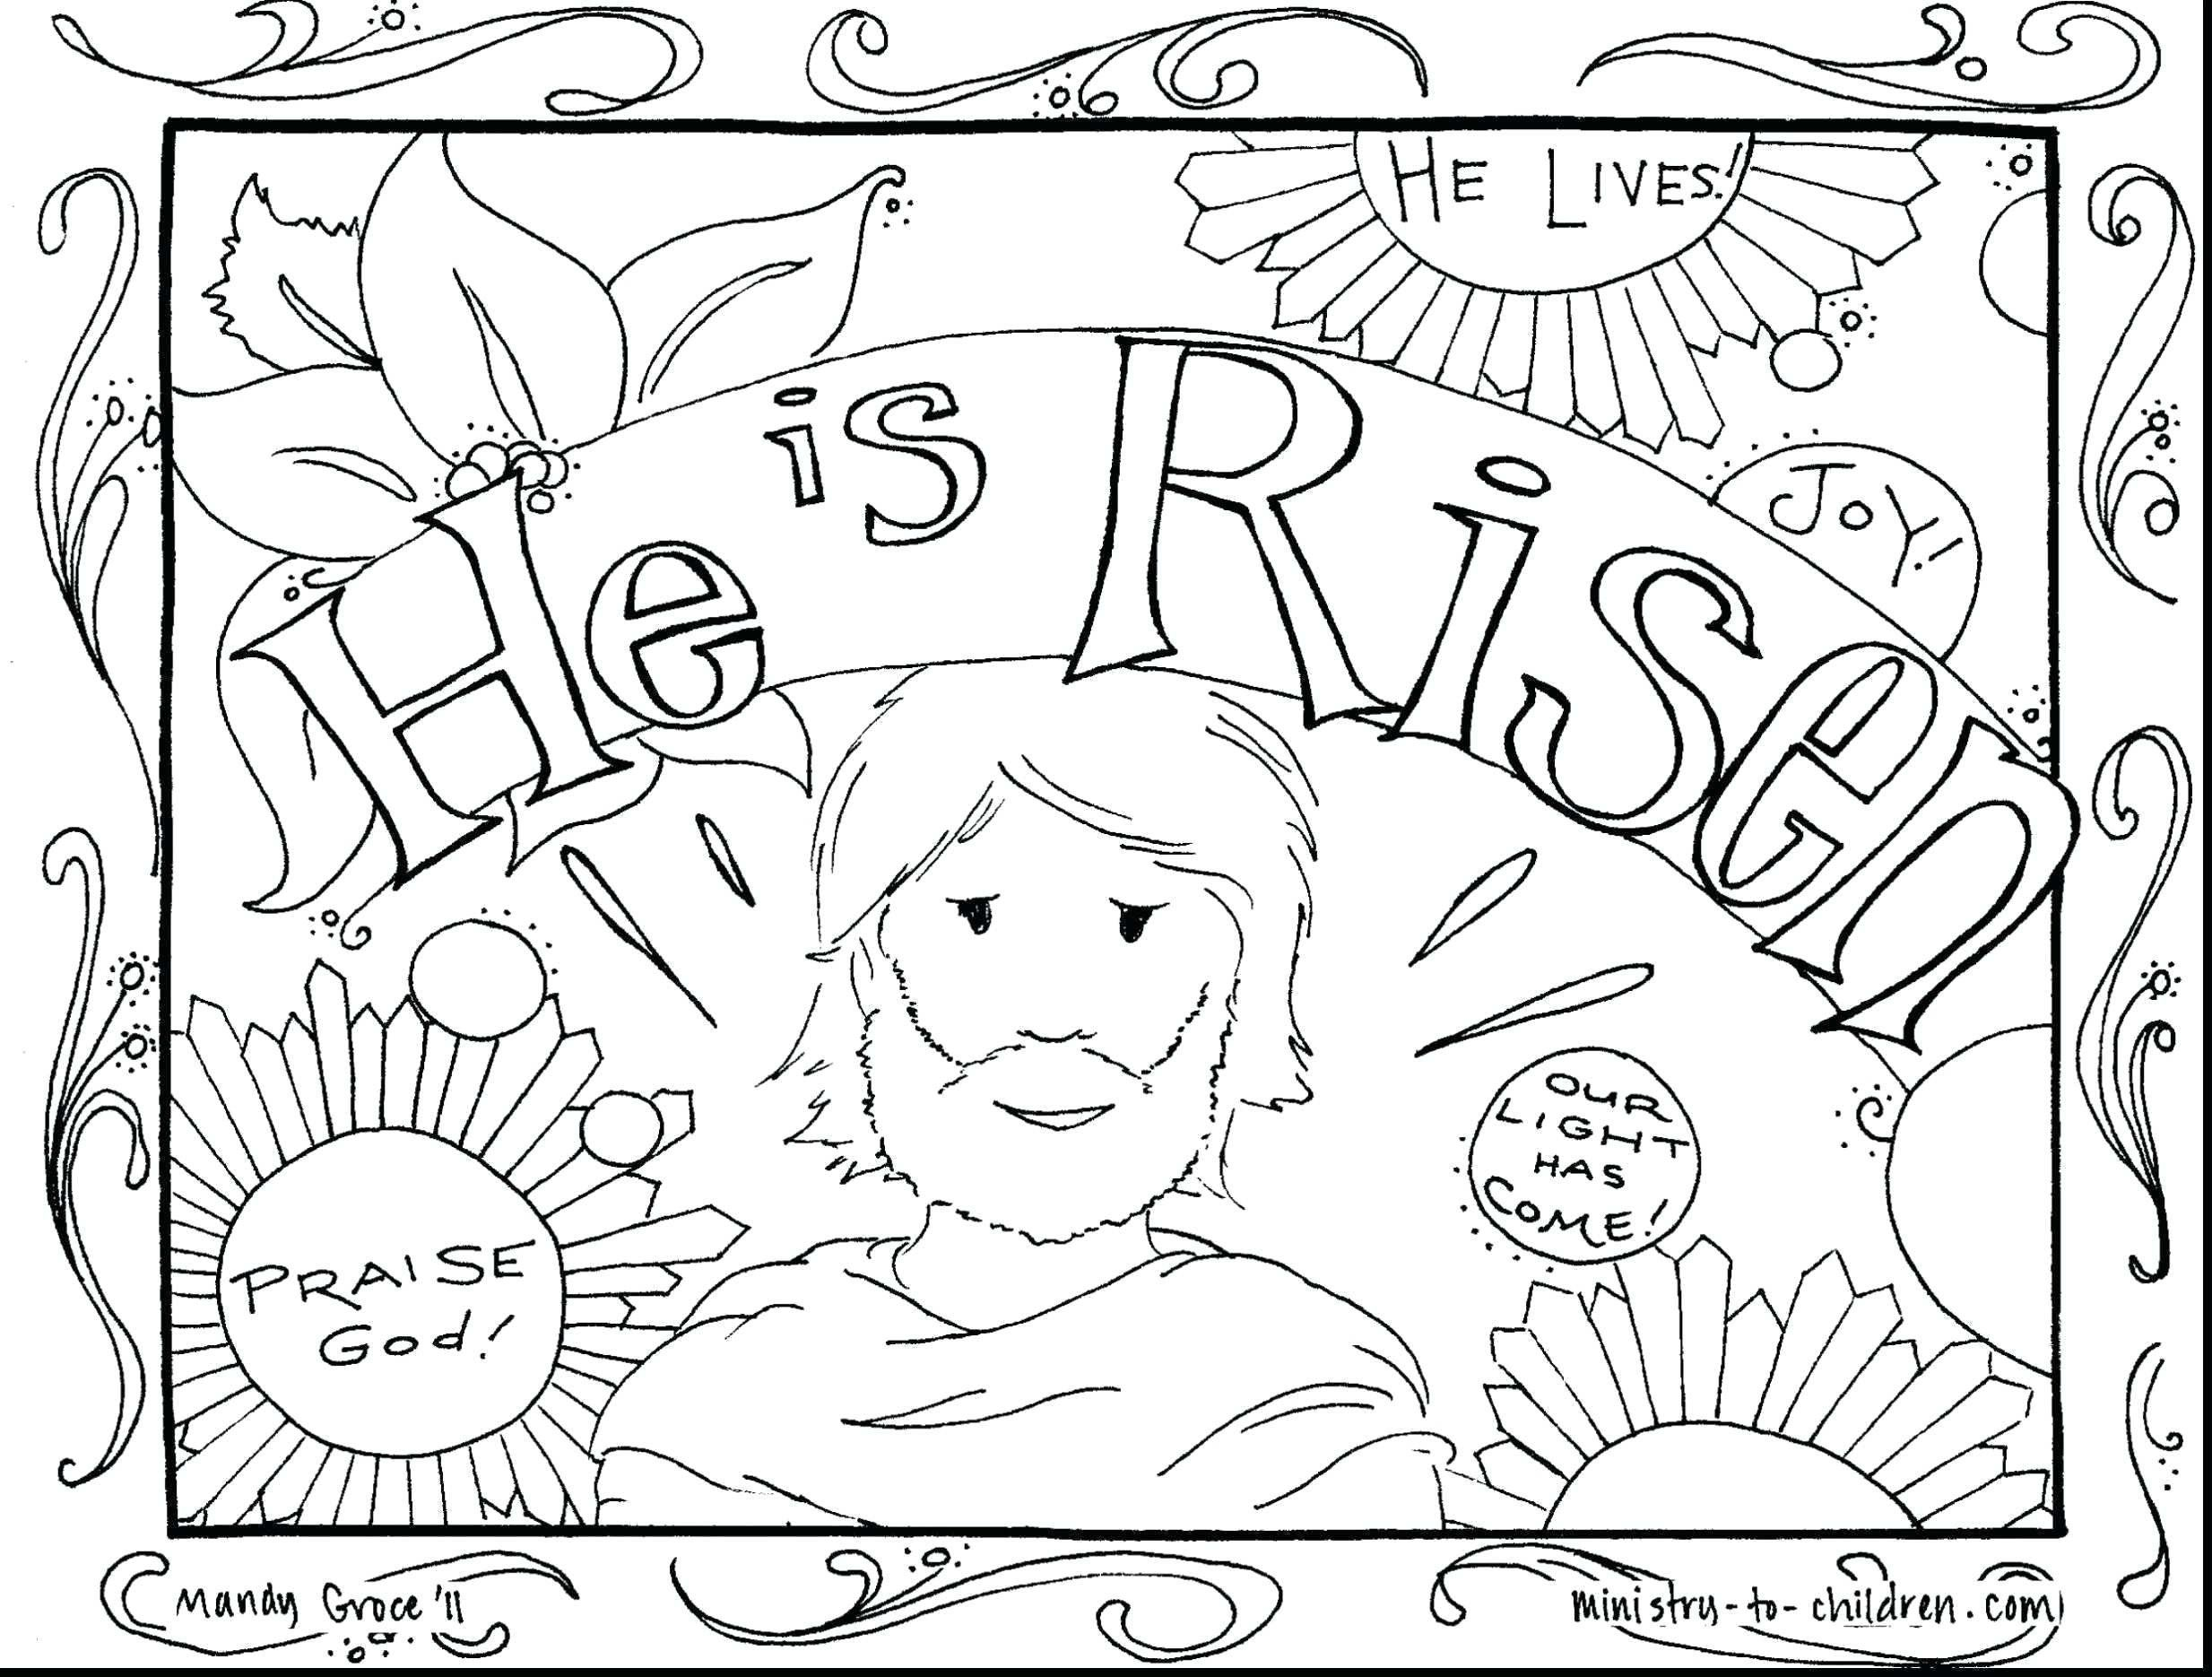 Prodical Son Coloring Pages Elegant Free Bible Coloring Pages Forgiveness Justpage In 2020 Jesus Coloring Pages Bible Coloring Pages Christian Coloring